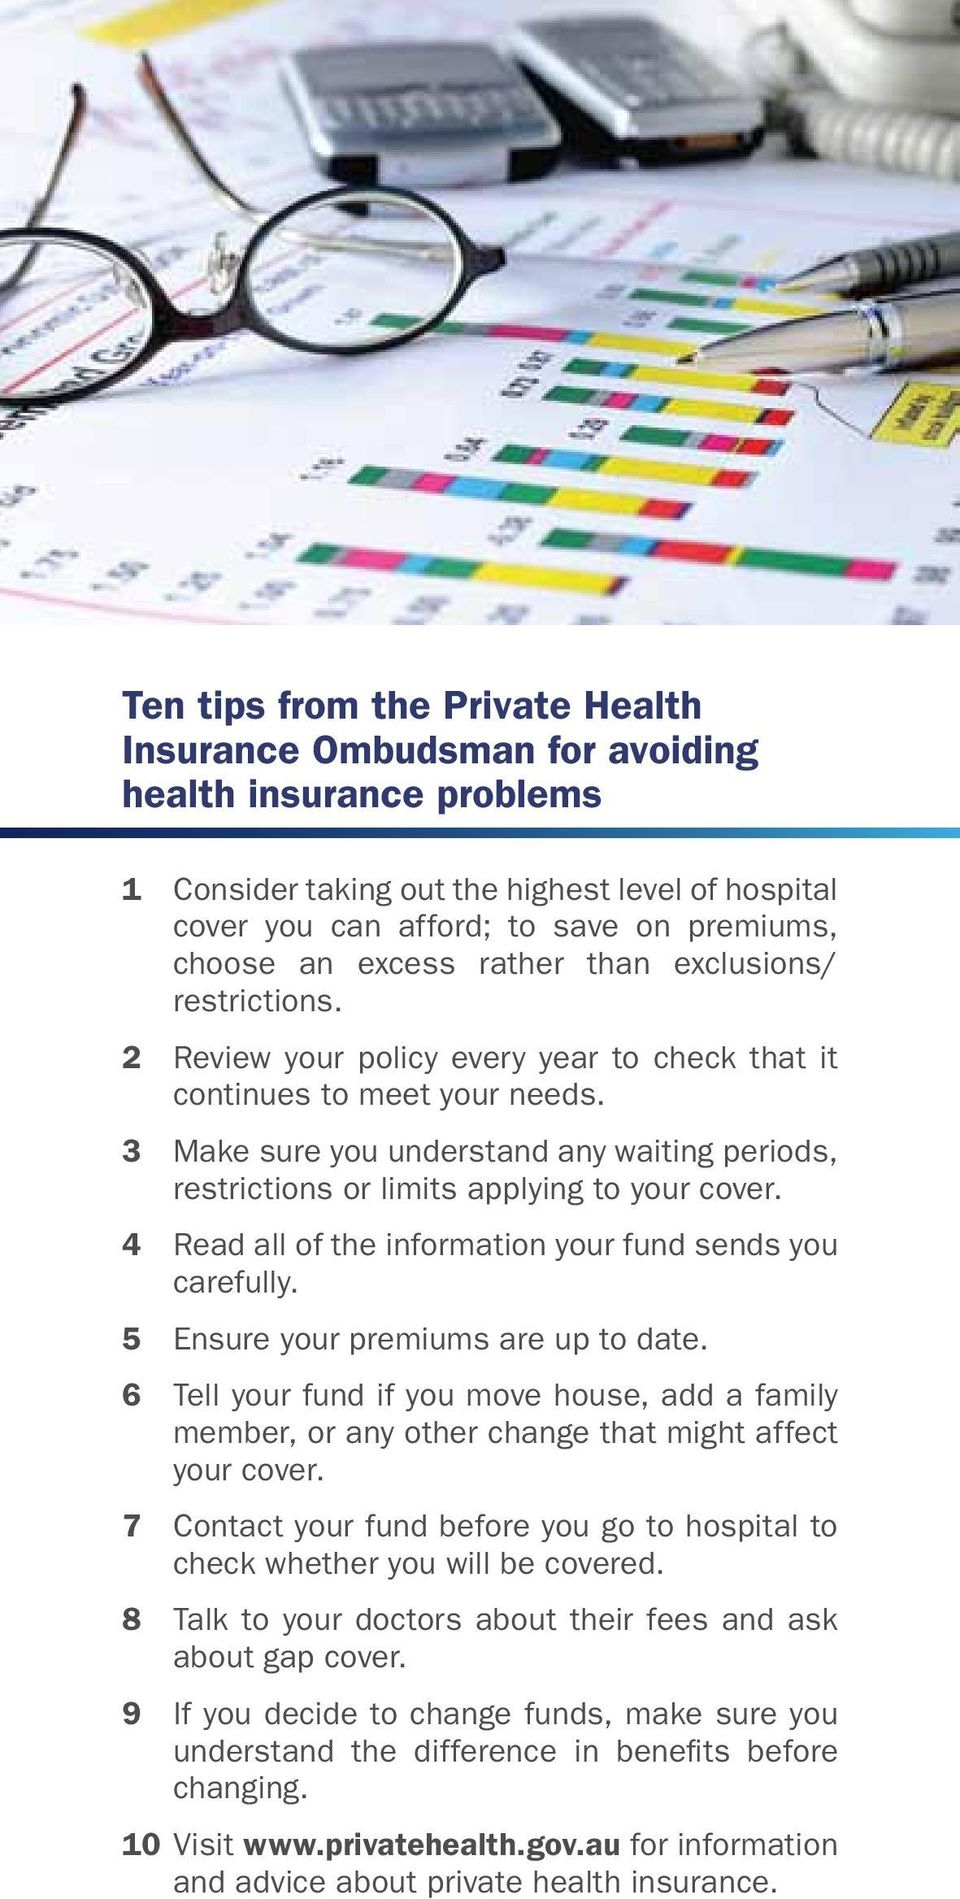 3 Make sure you understand any waiting periods, restrictions or limits applying to your cover. 4 Read all of the information your fund sends you carefully. 5 Ensure your premiums are up to date.